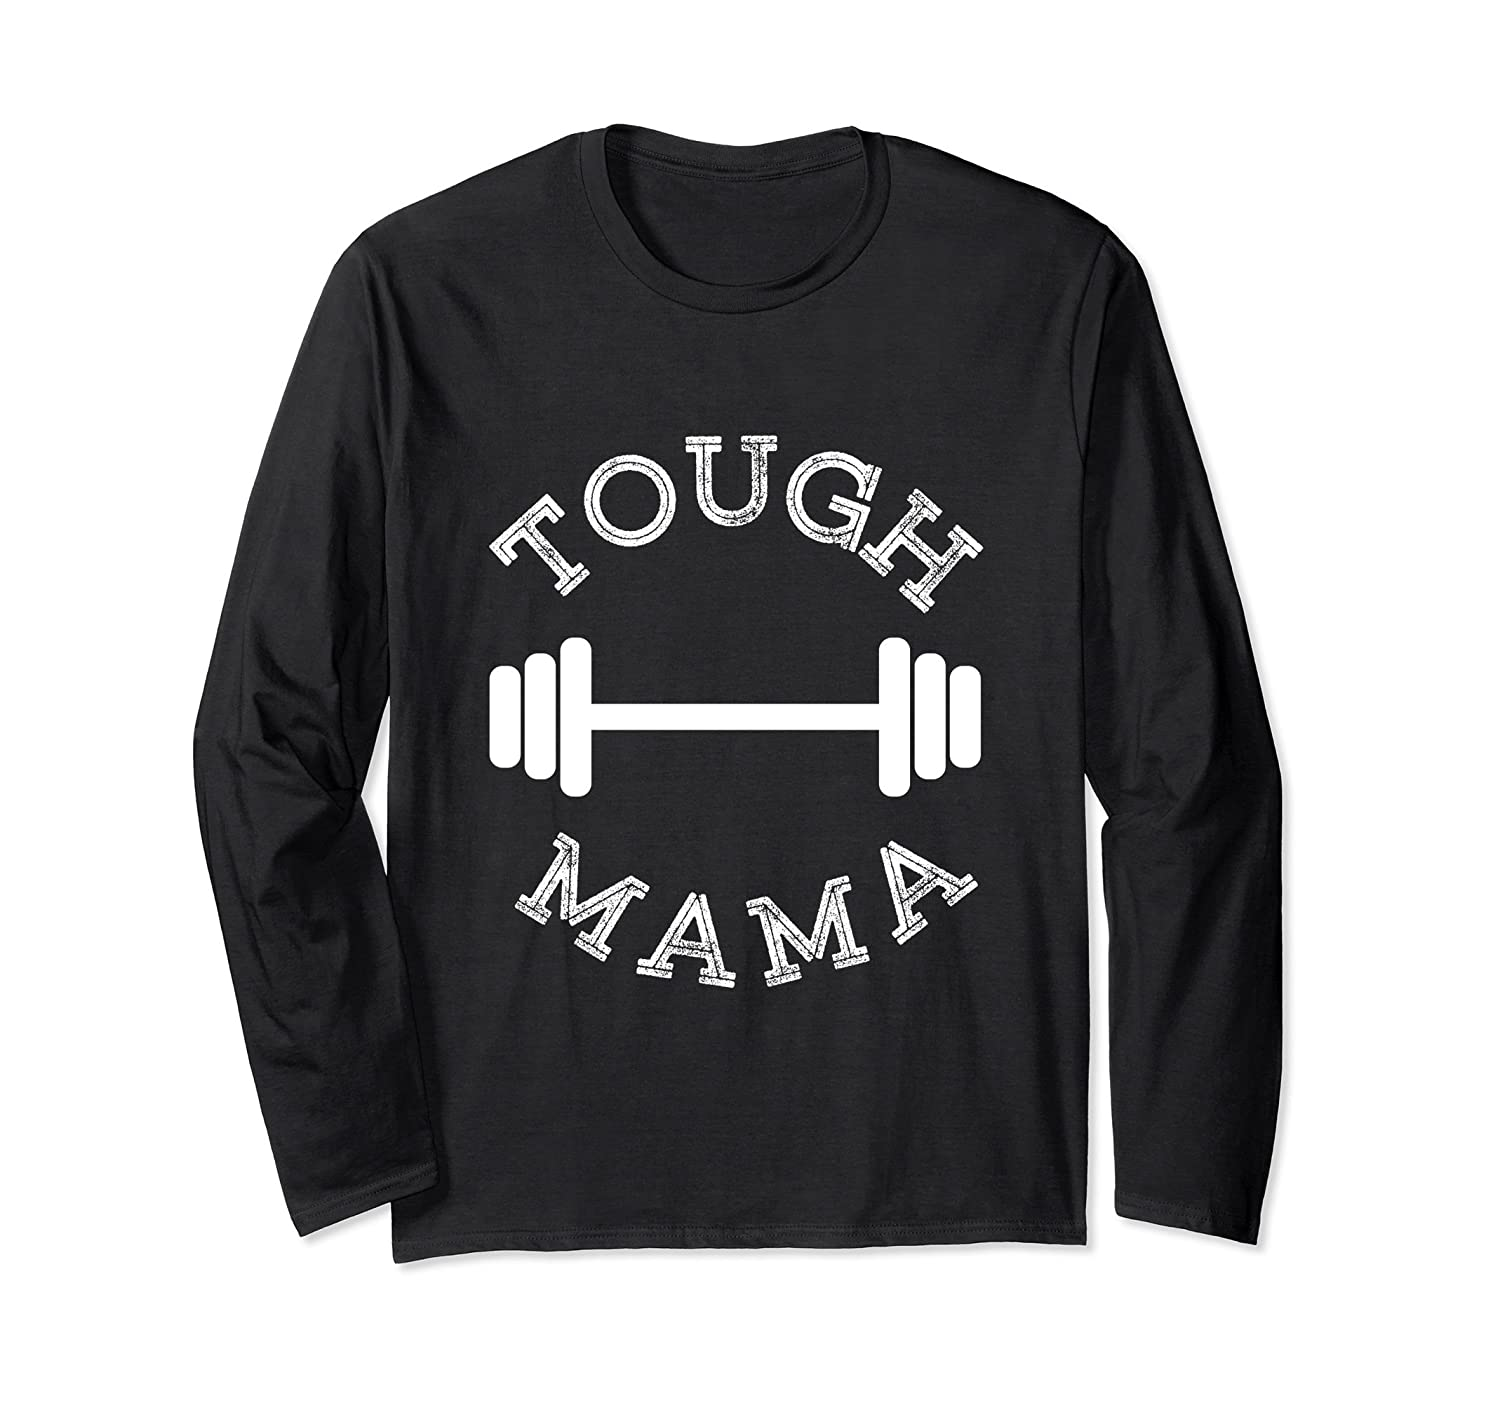 Mama Women/'s Sweatshirt Gift for New Mum Gift for Her Gym Sweater Mum Clothes